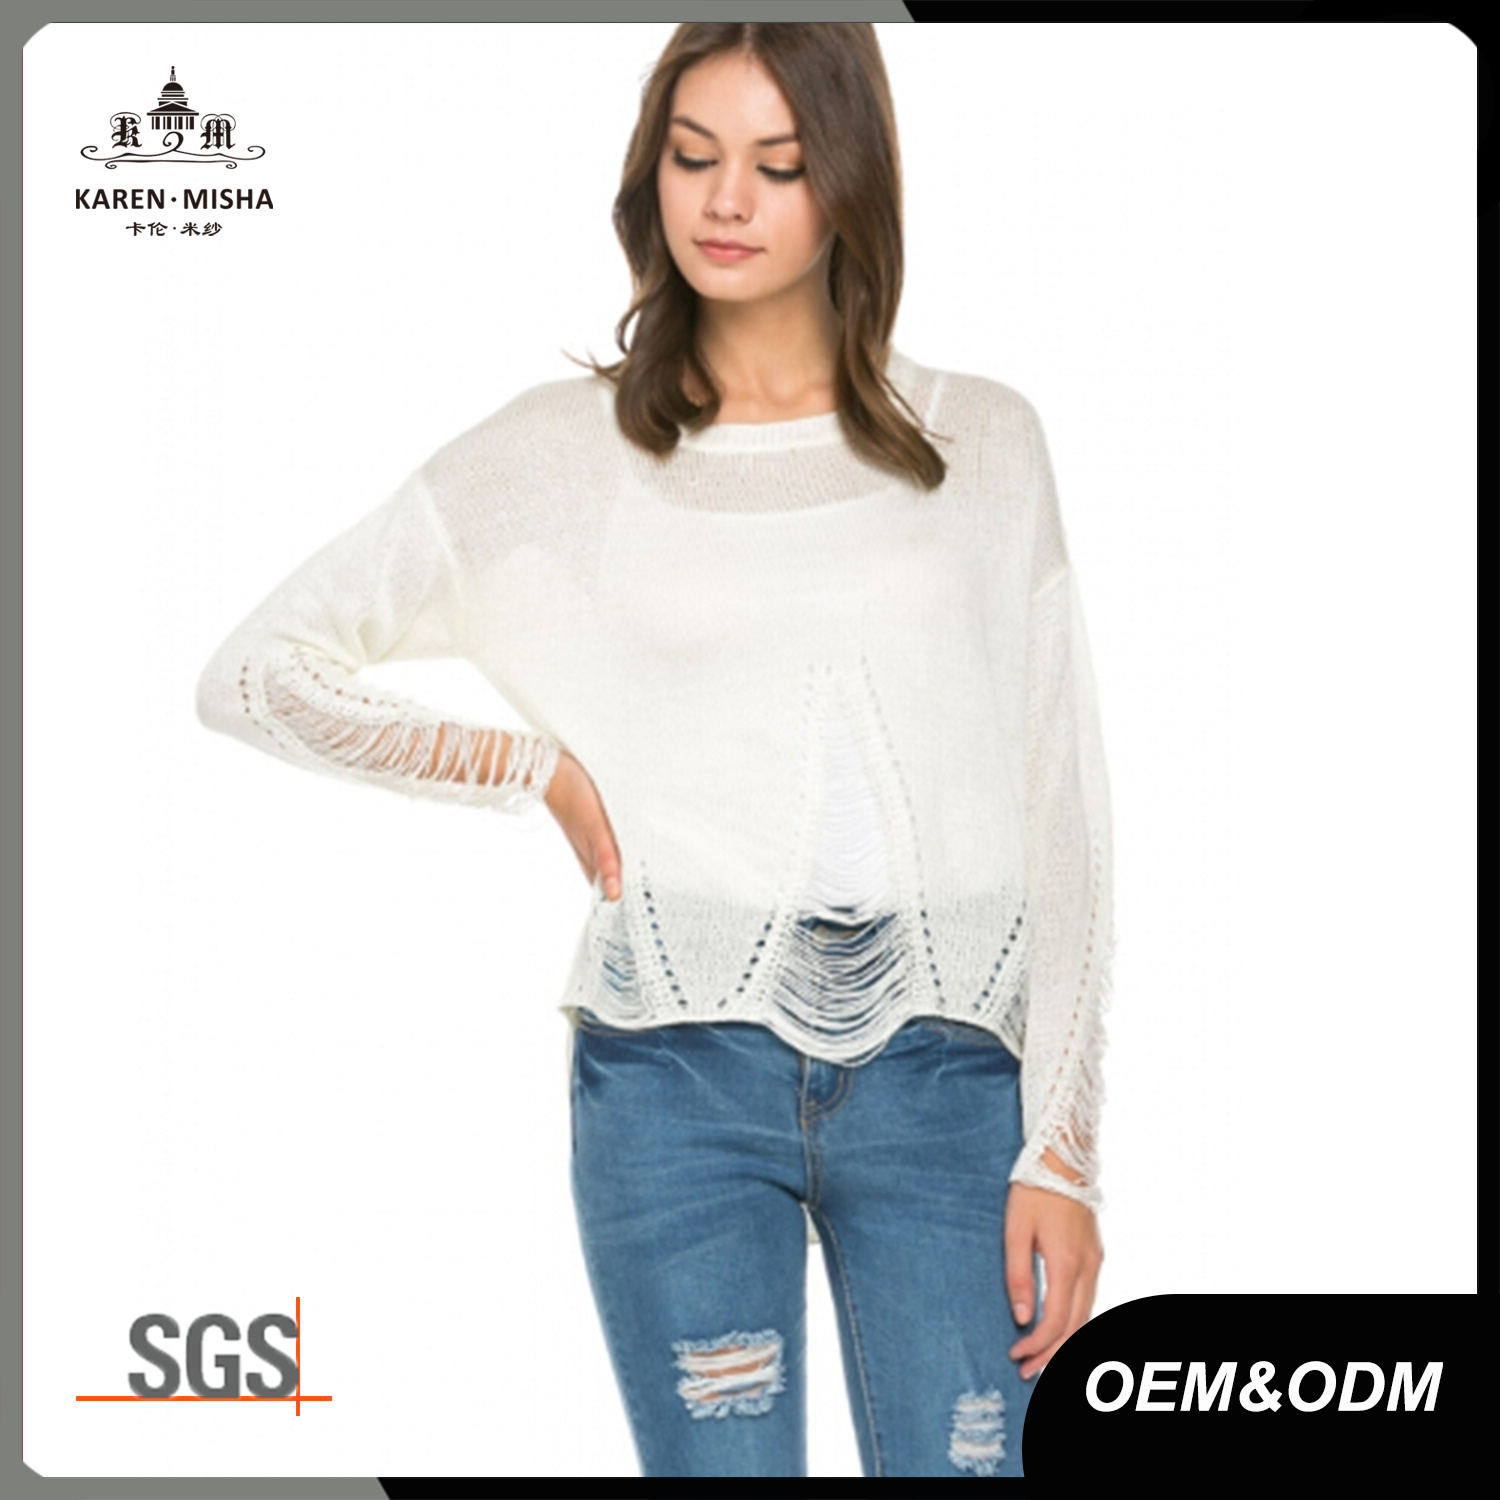 Ladies Online Distressed Fashion Knitwear Clothing Apparel